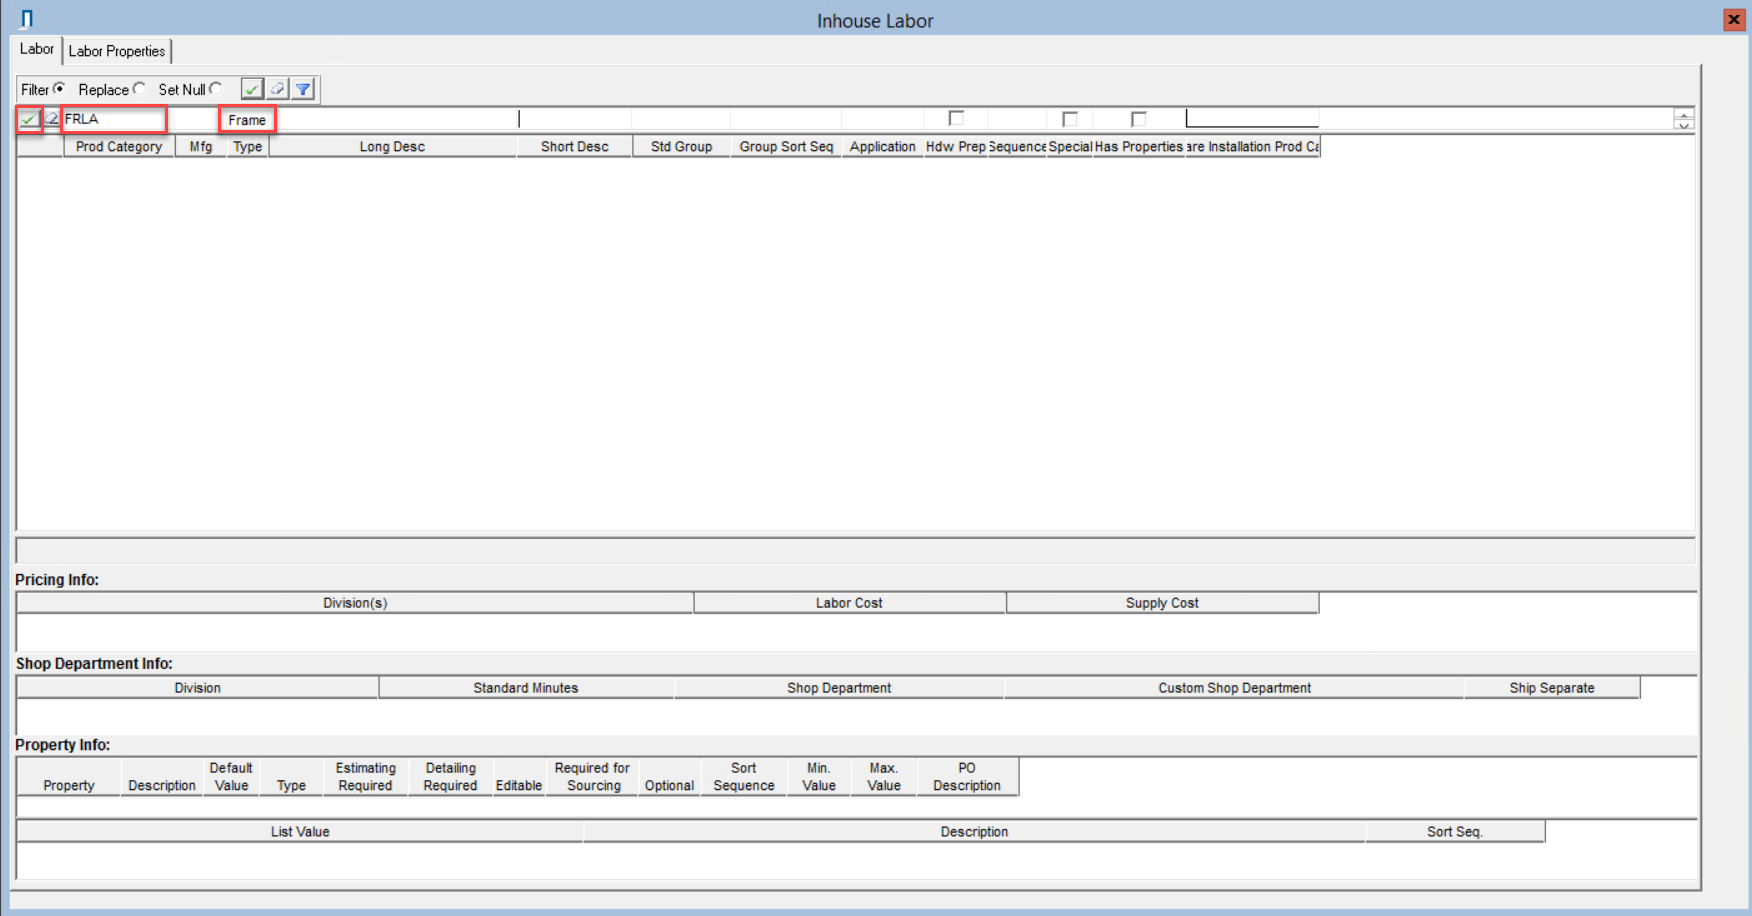 Inhouse Labor window; shows filter criteria in the line item fields and the location of the checkmark icon.